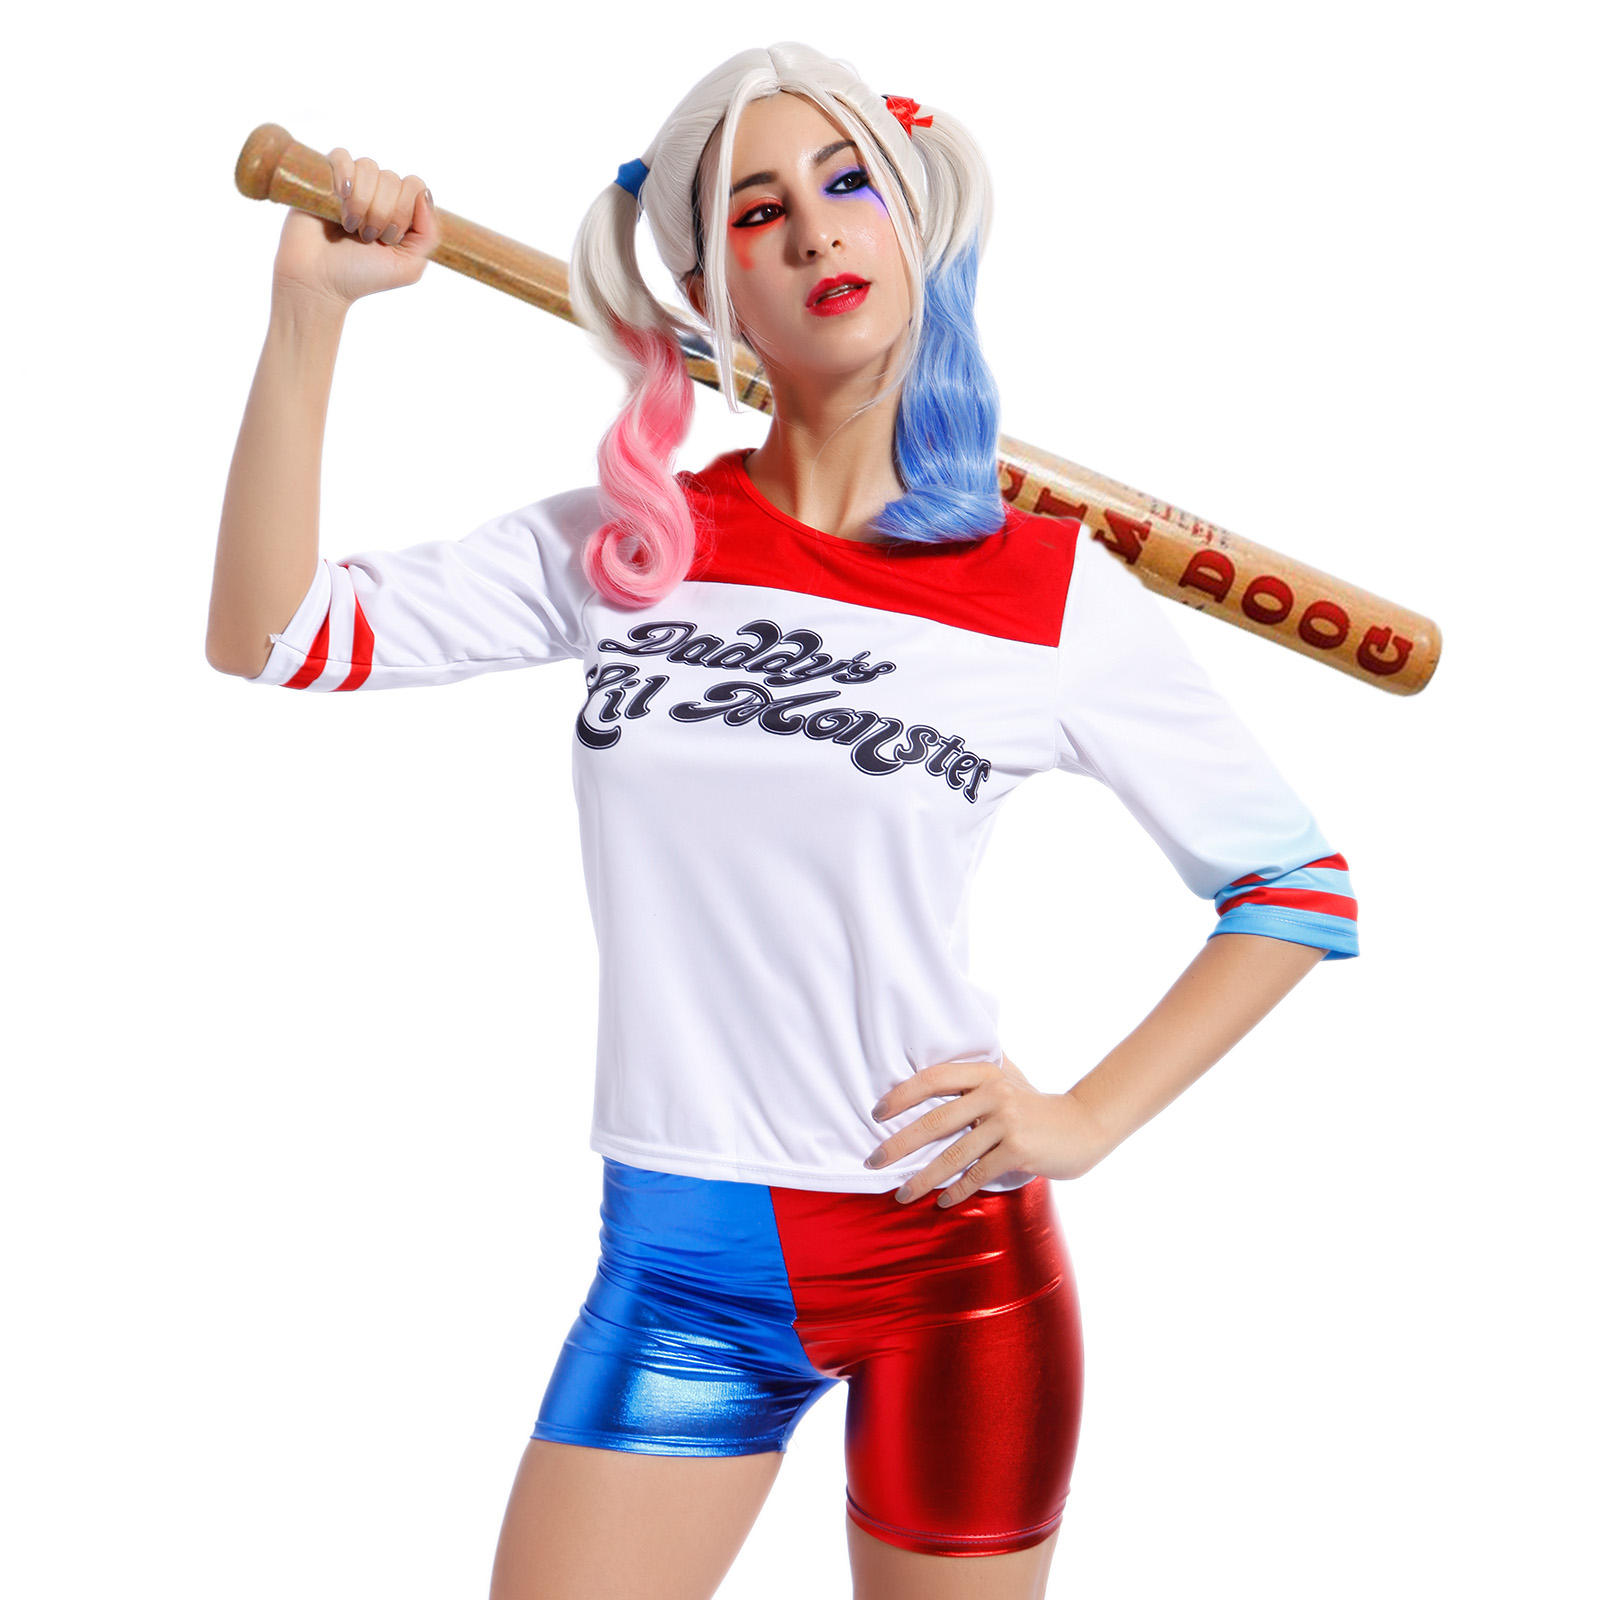 59b51147c438 Ladies Harley Quinn Cosplay T-shirt Suicide Squad Daddy's Lil Monster Top  Wigs